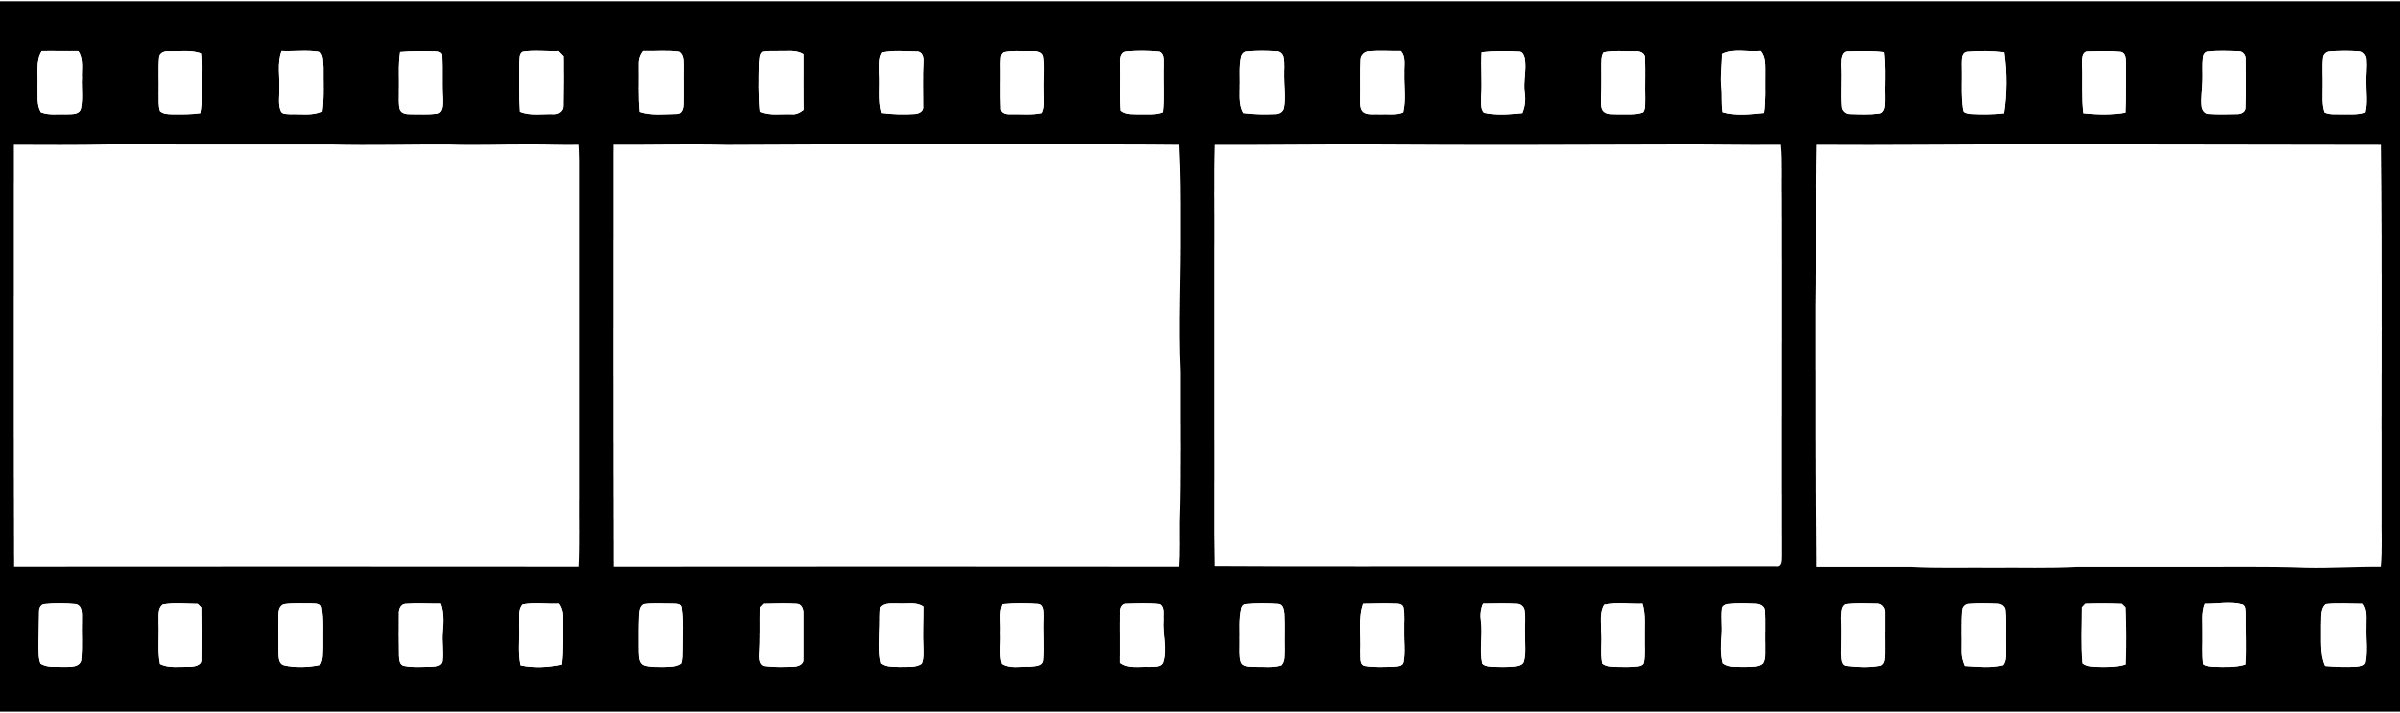 Movie film strip clipart